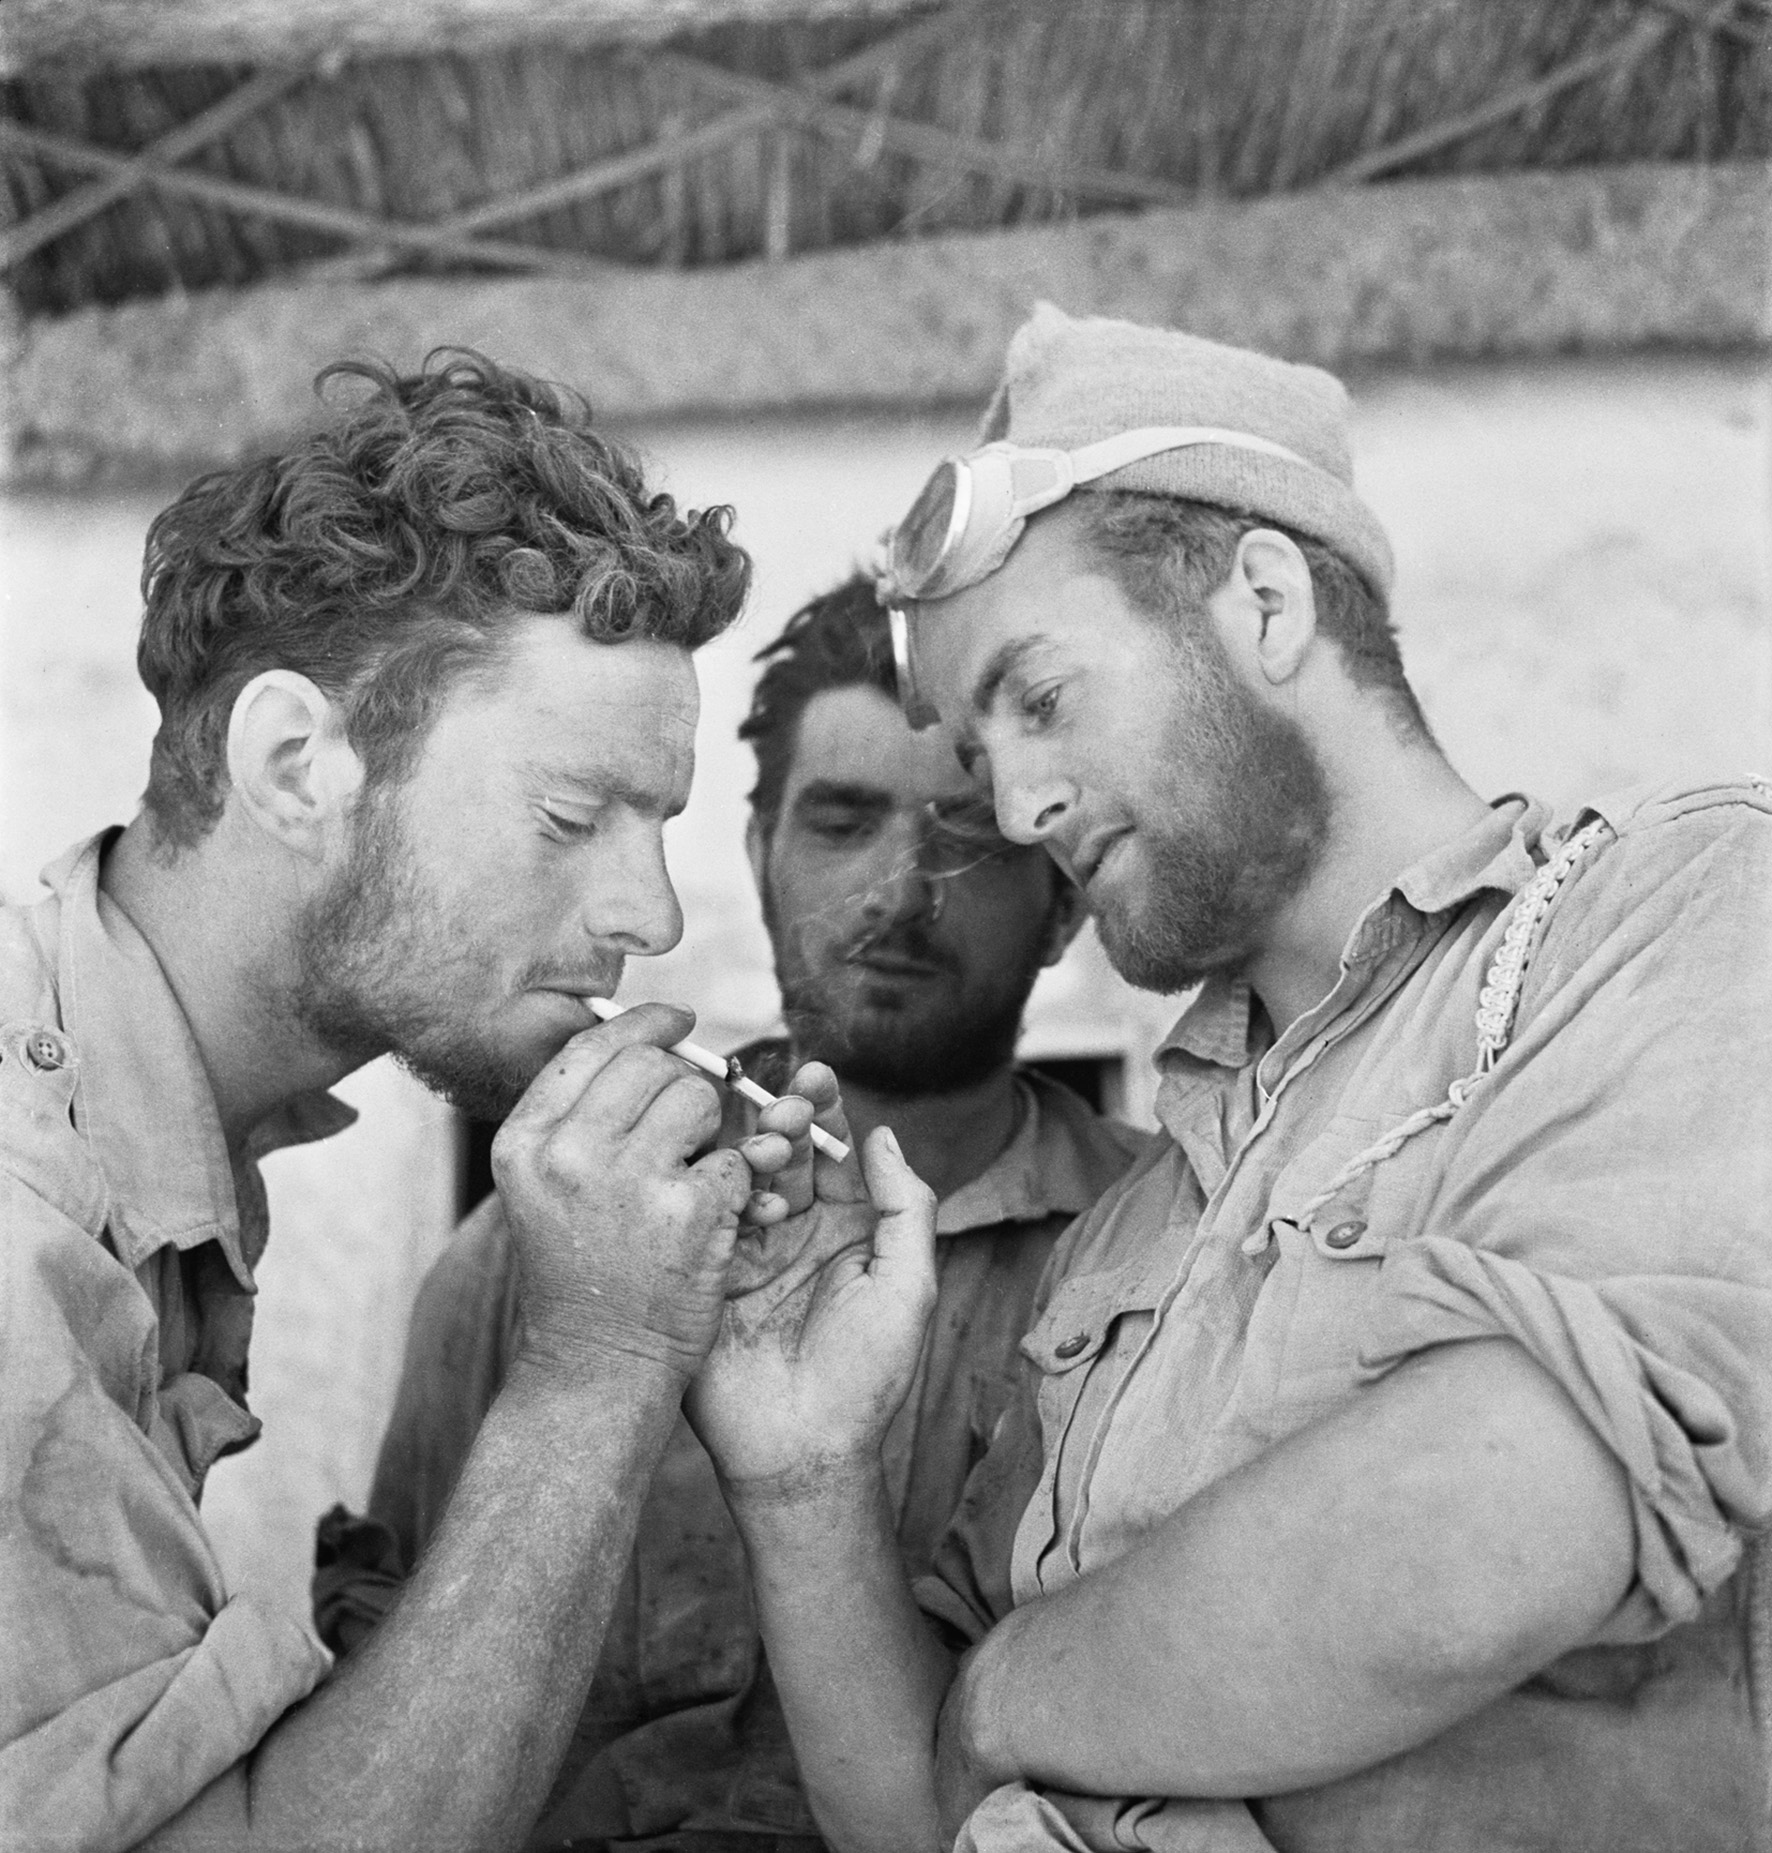 Cecil Beaton - Long Range Desert Group - Part of IWM's Ministry of Information Second World war Official Collection By permission of IWM (Imperial War Museums)